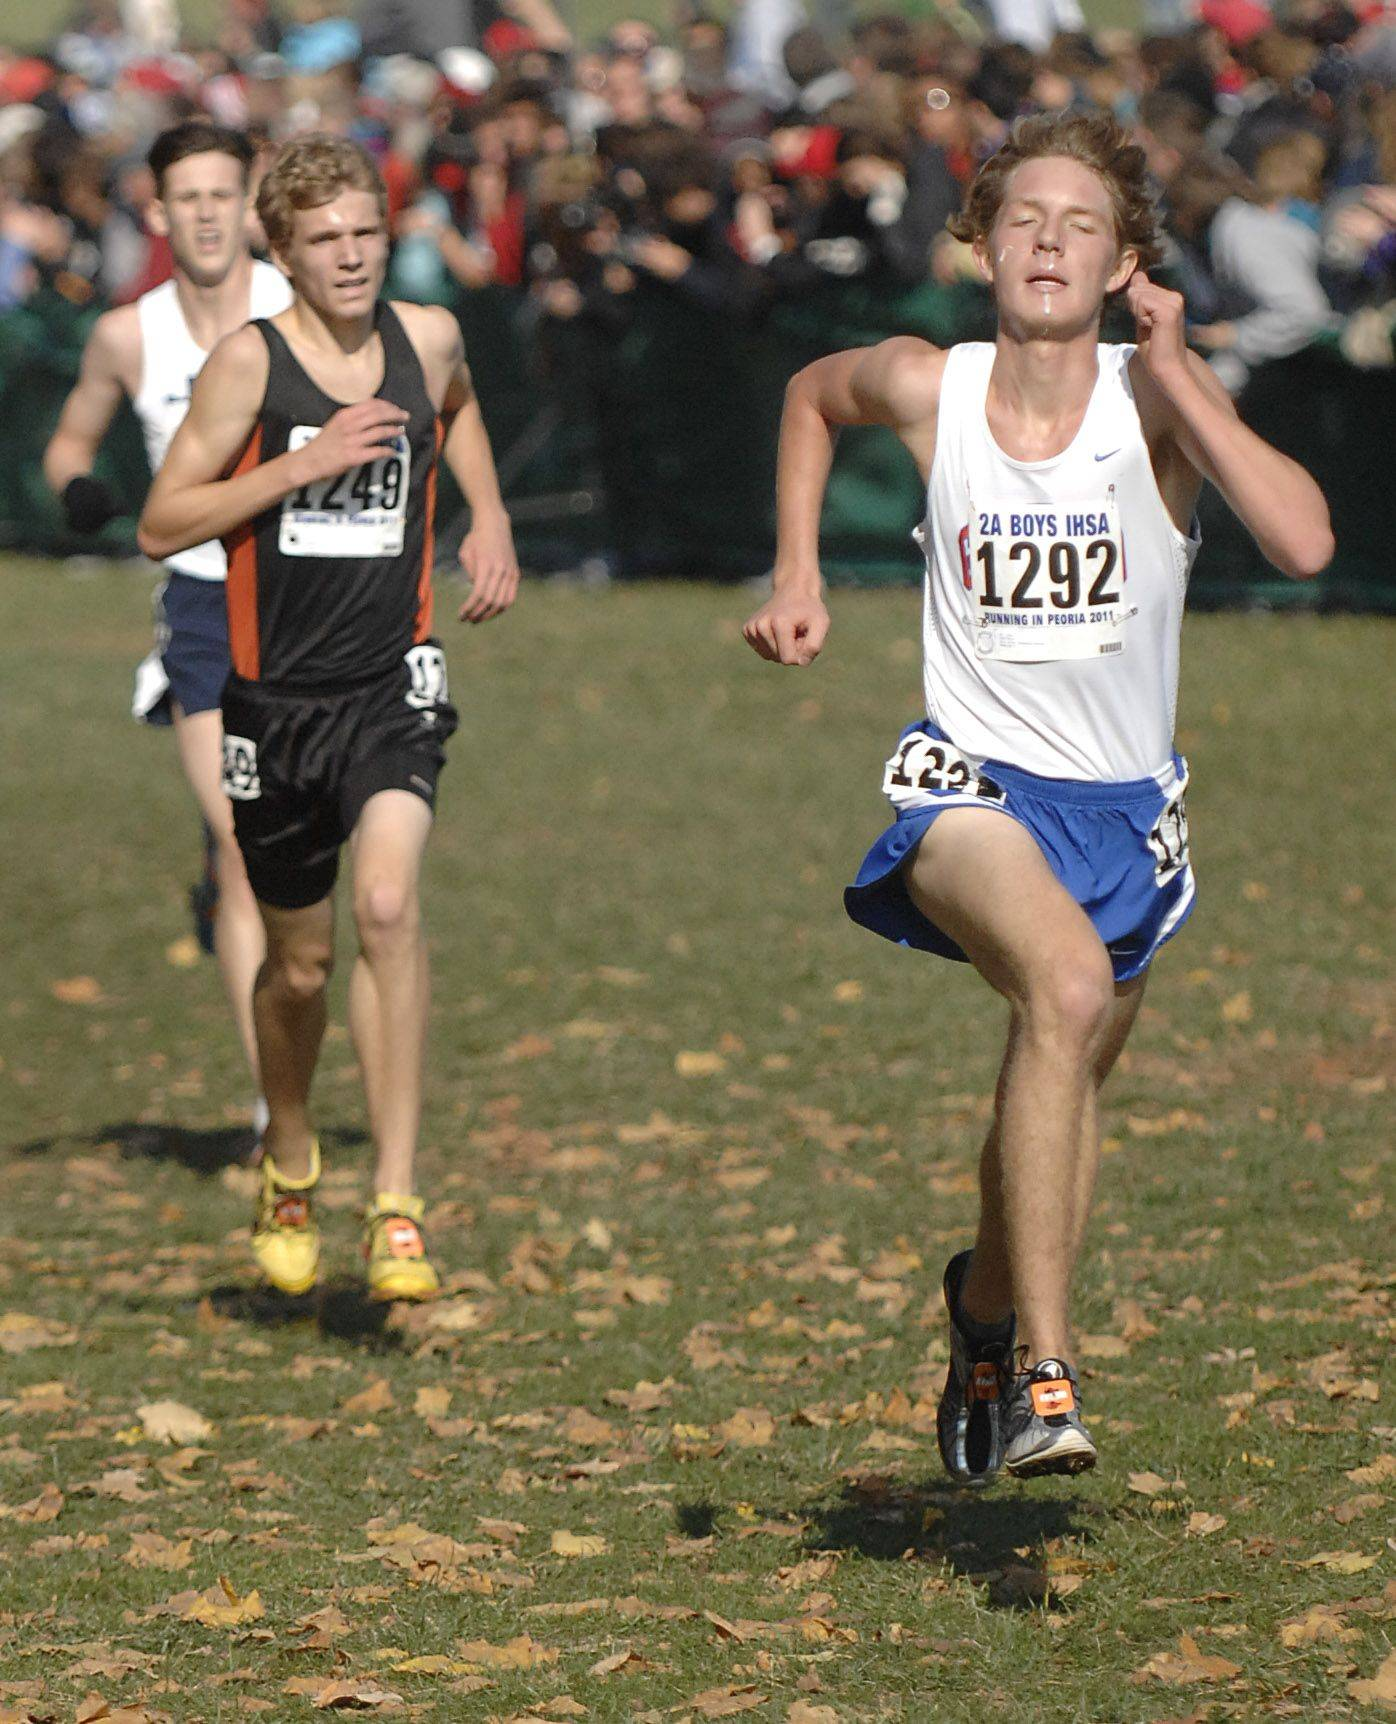 Glenbard South's John Wold nears the finish line to take 4th place with a time of 14:40 in the 2A state cross country final.